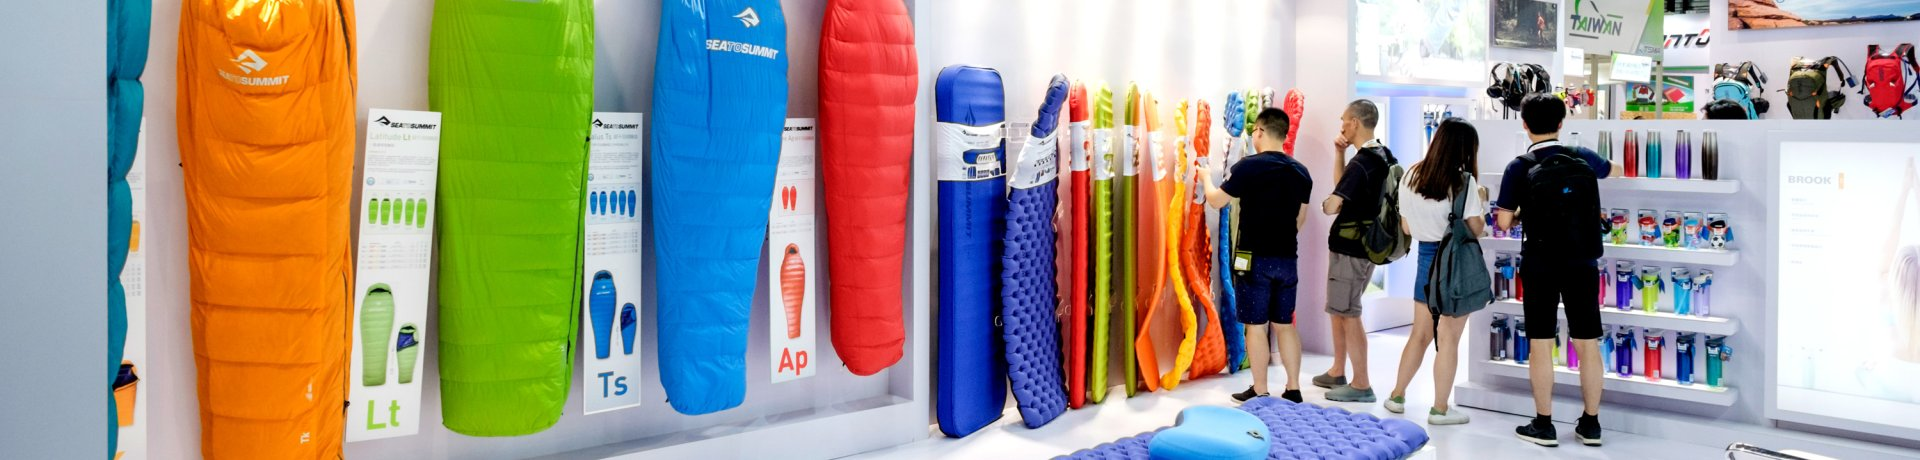 Sleeping bags on an exhibition booth